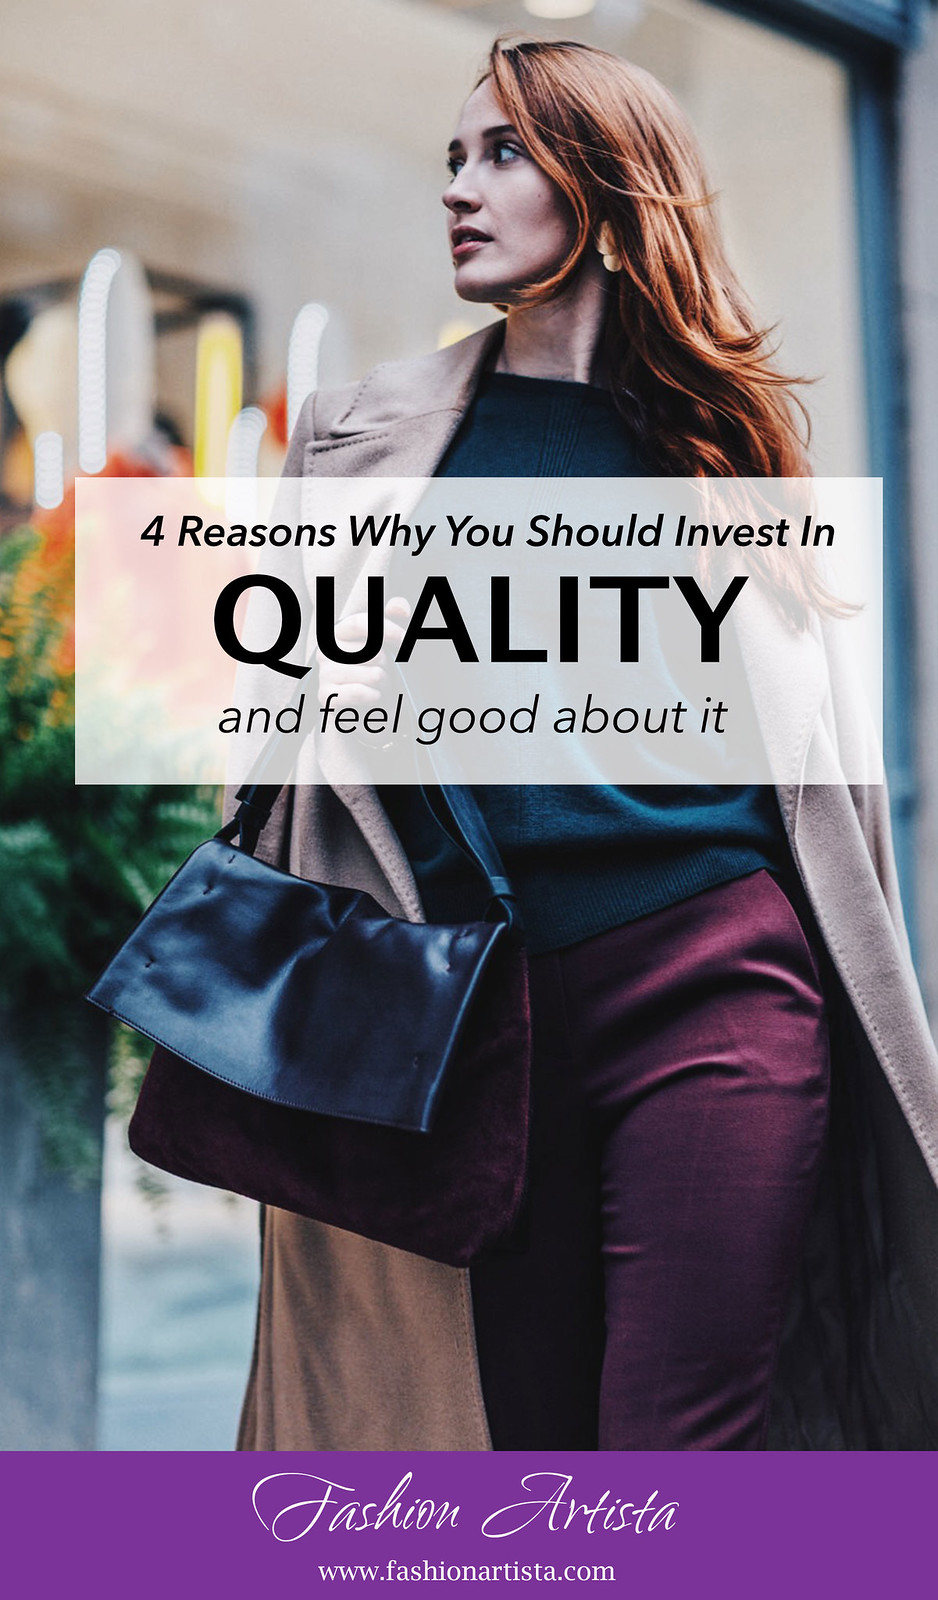 www.fashionartista.com - 4 Reasons Why You Should Invest In Quality (and feel good about yourself)